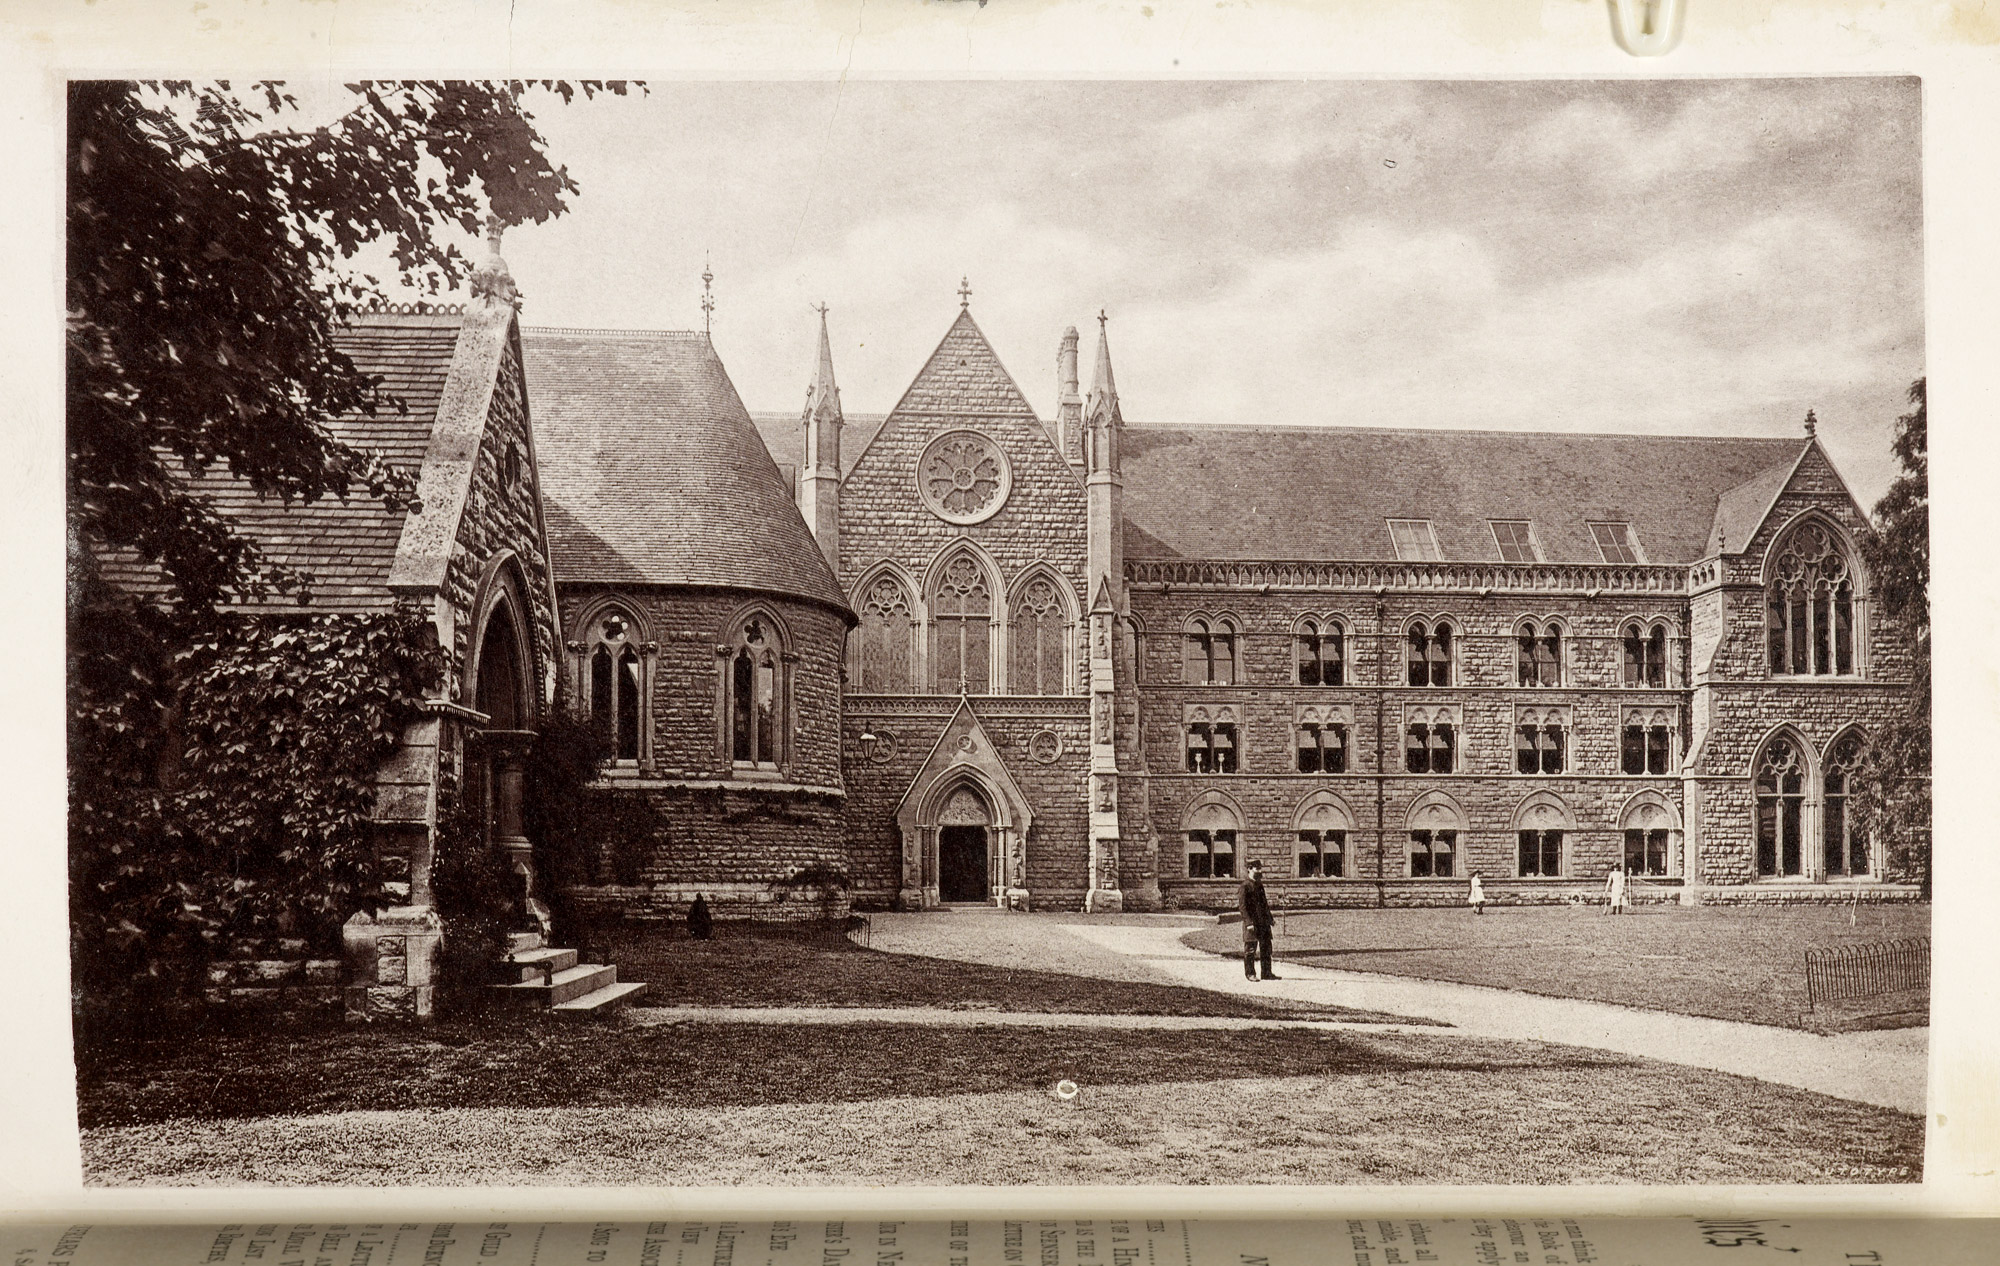 Photograph of Cheltenham Ladies' College from The Cheltenham Ladies College Magazine